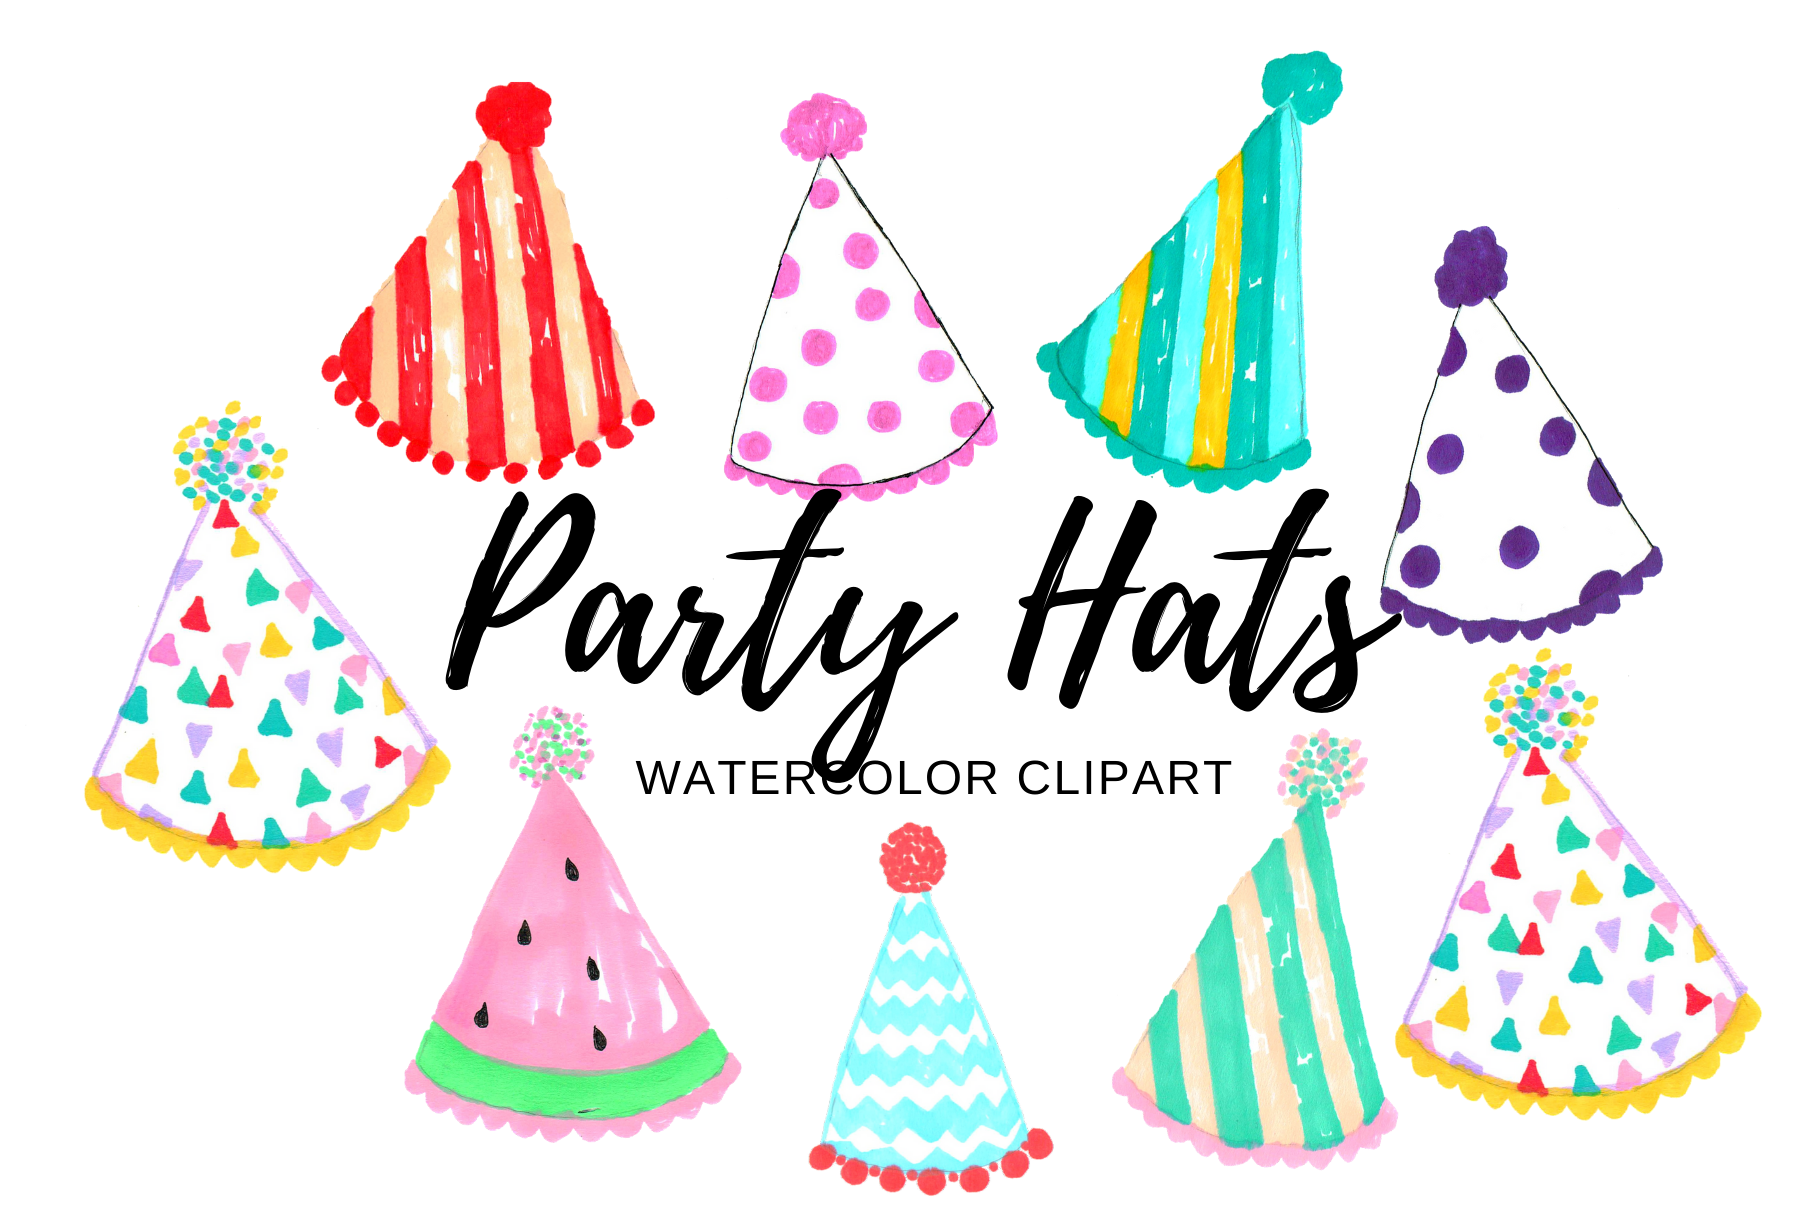 Watercolor Birthday Party Hat Clipart By Writelovely Thehungryjpeg Com You may also like brown cowboy hat or animal hat clipart! watercolor birthday party hat clipart